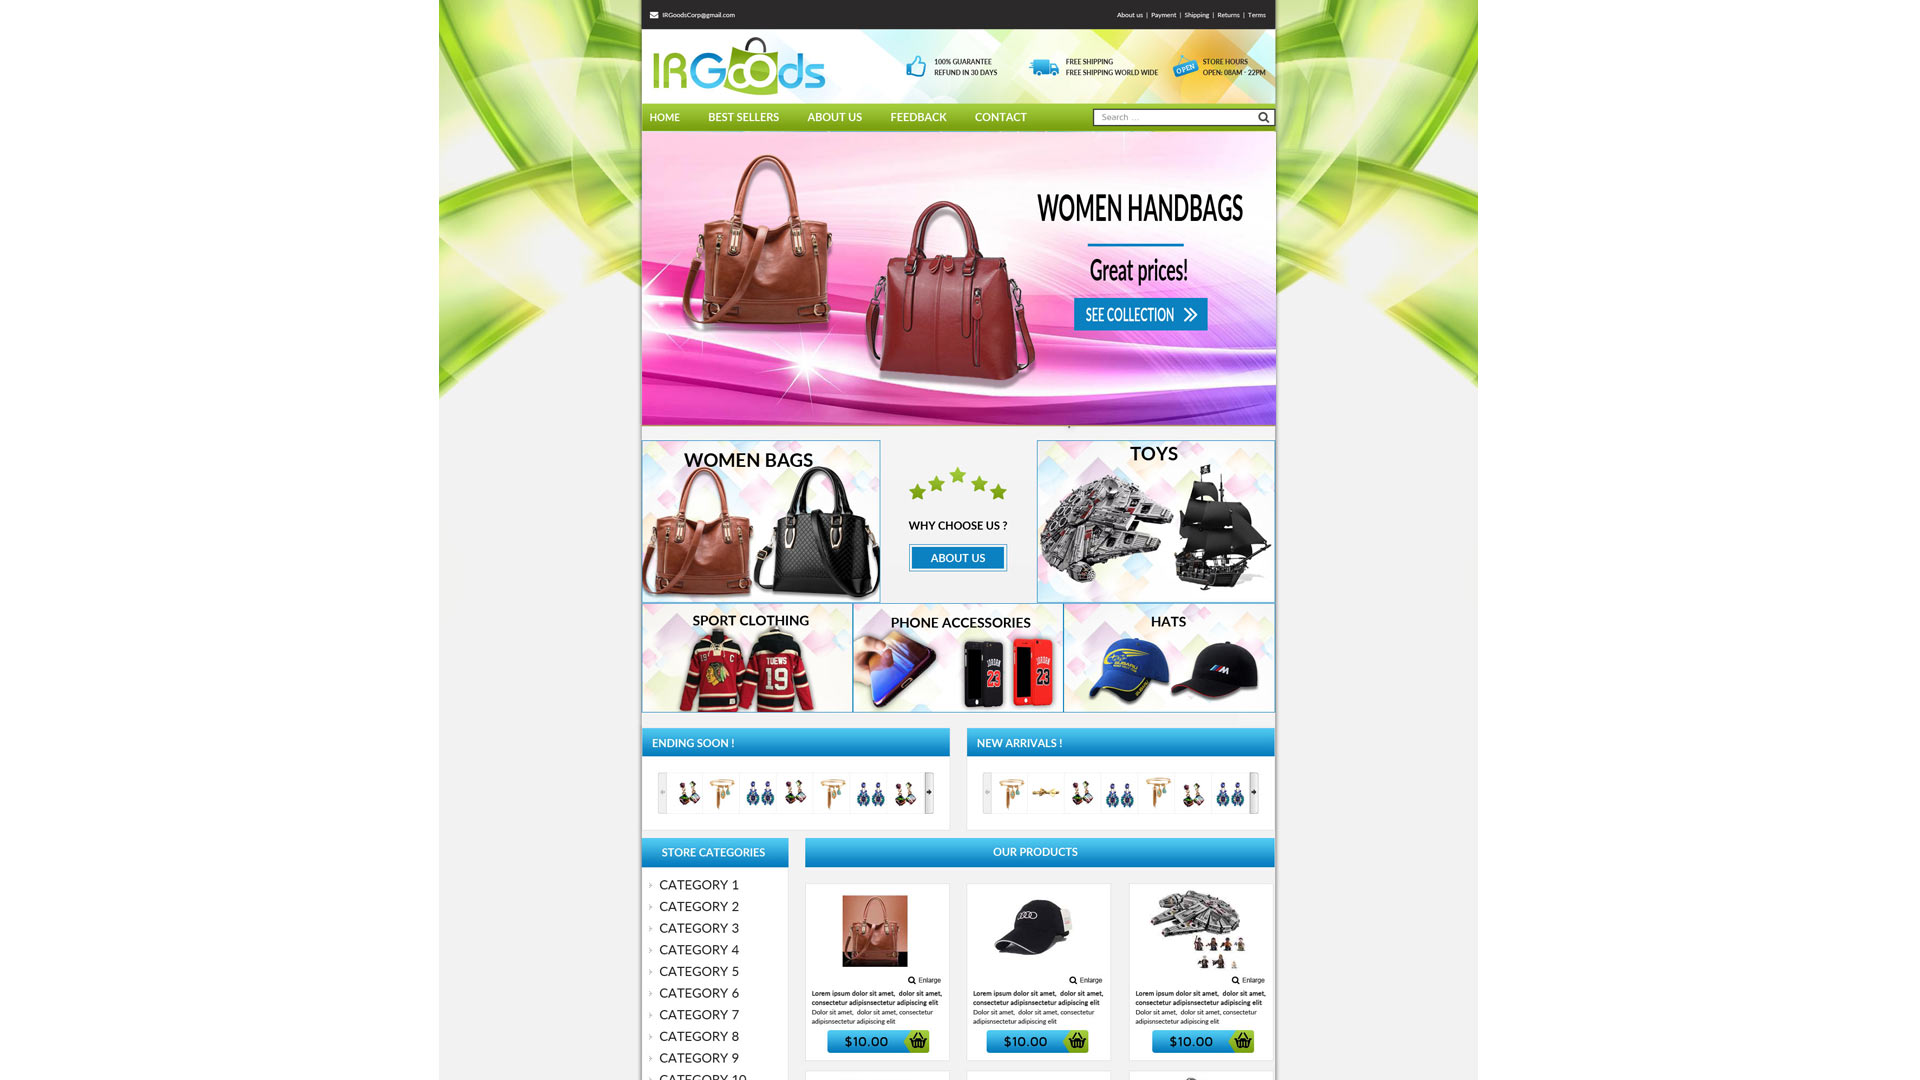 Nrngoods template ebay store zeinebay for Ebay store design templates free